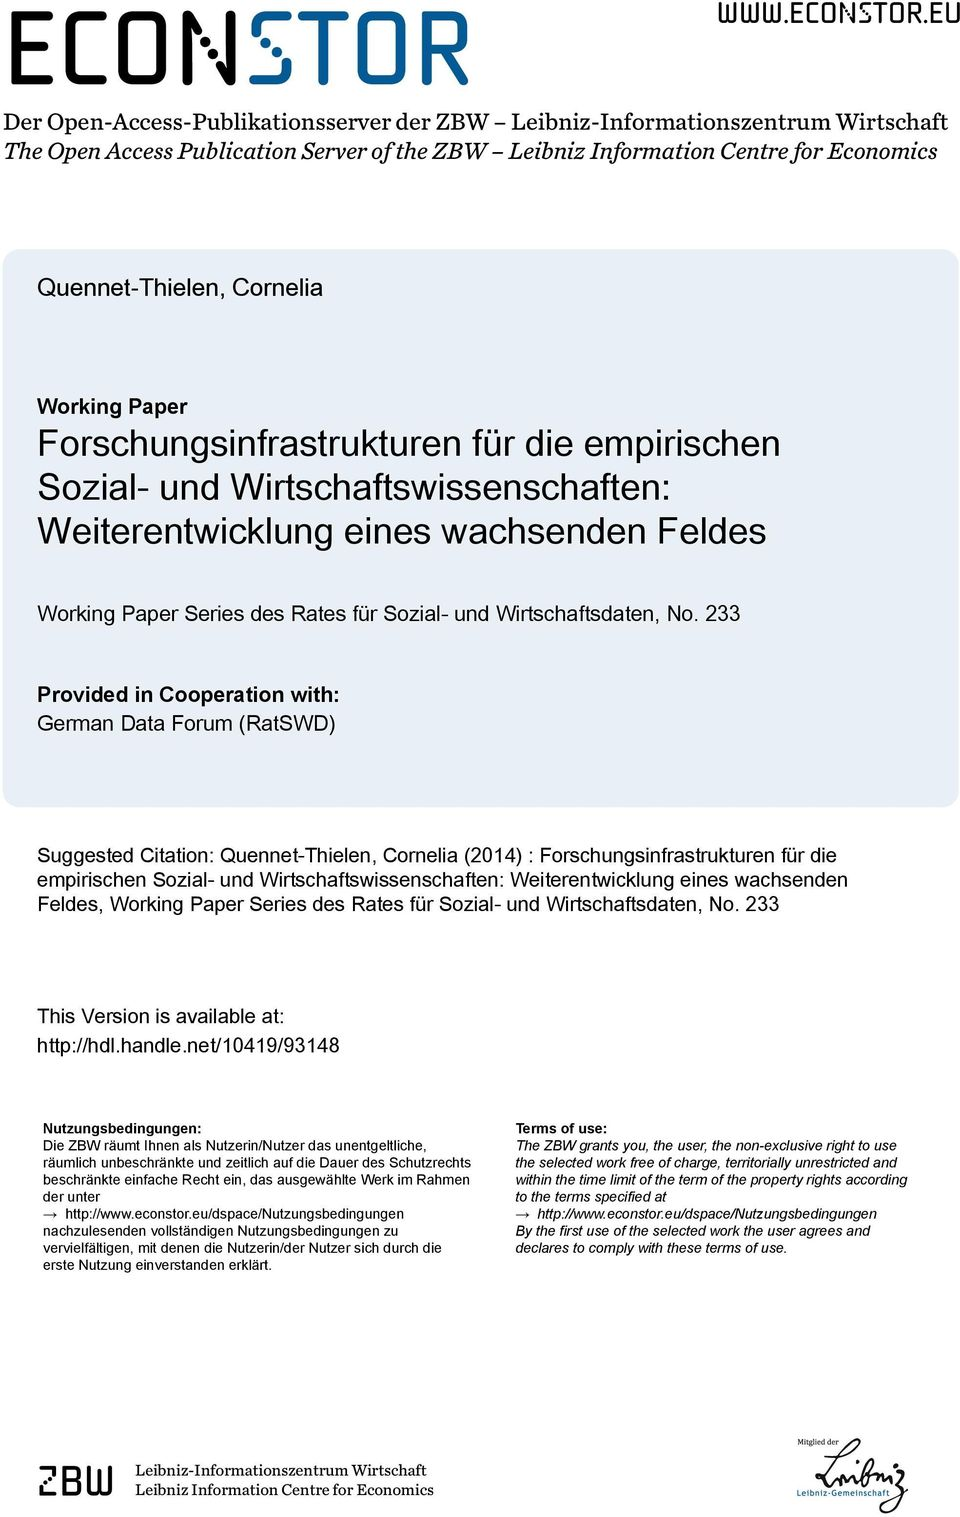 eu Der Open-Access-Publikationsserver der ZBW Leibniz-Informationszentrum Wirtschaft The Open Access Publication Server of the ZBW Leibniz Information Centre for Economics Quennet-Thielen, Cornelia